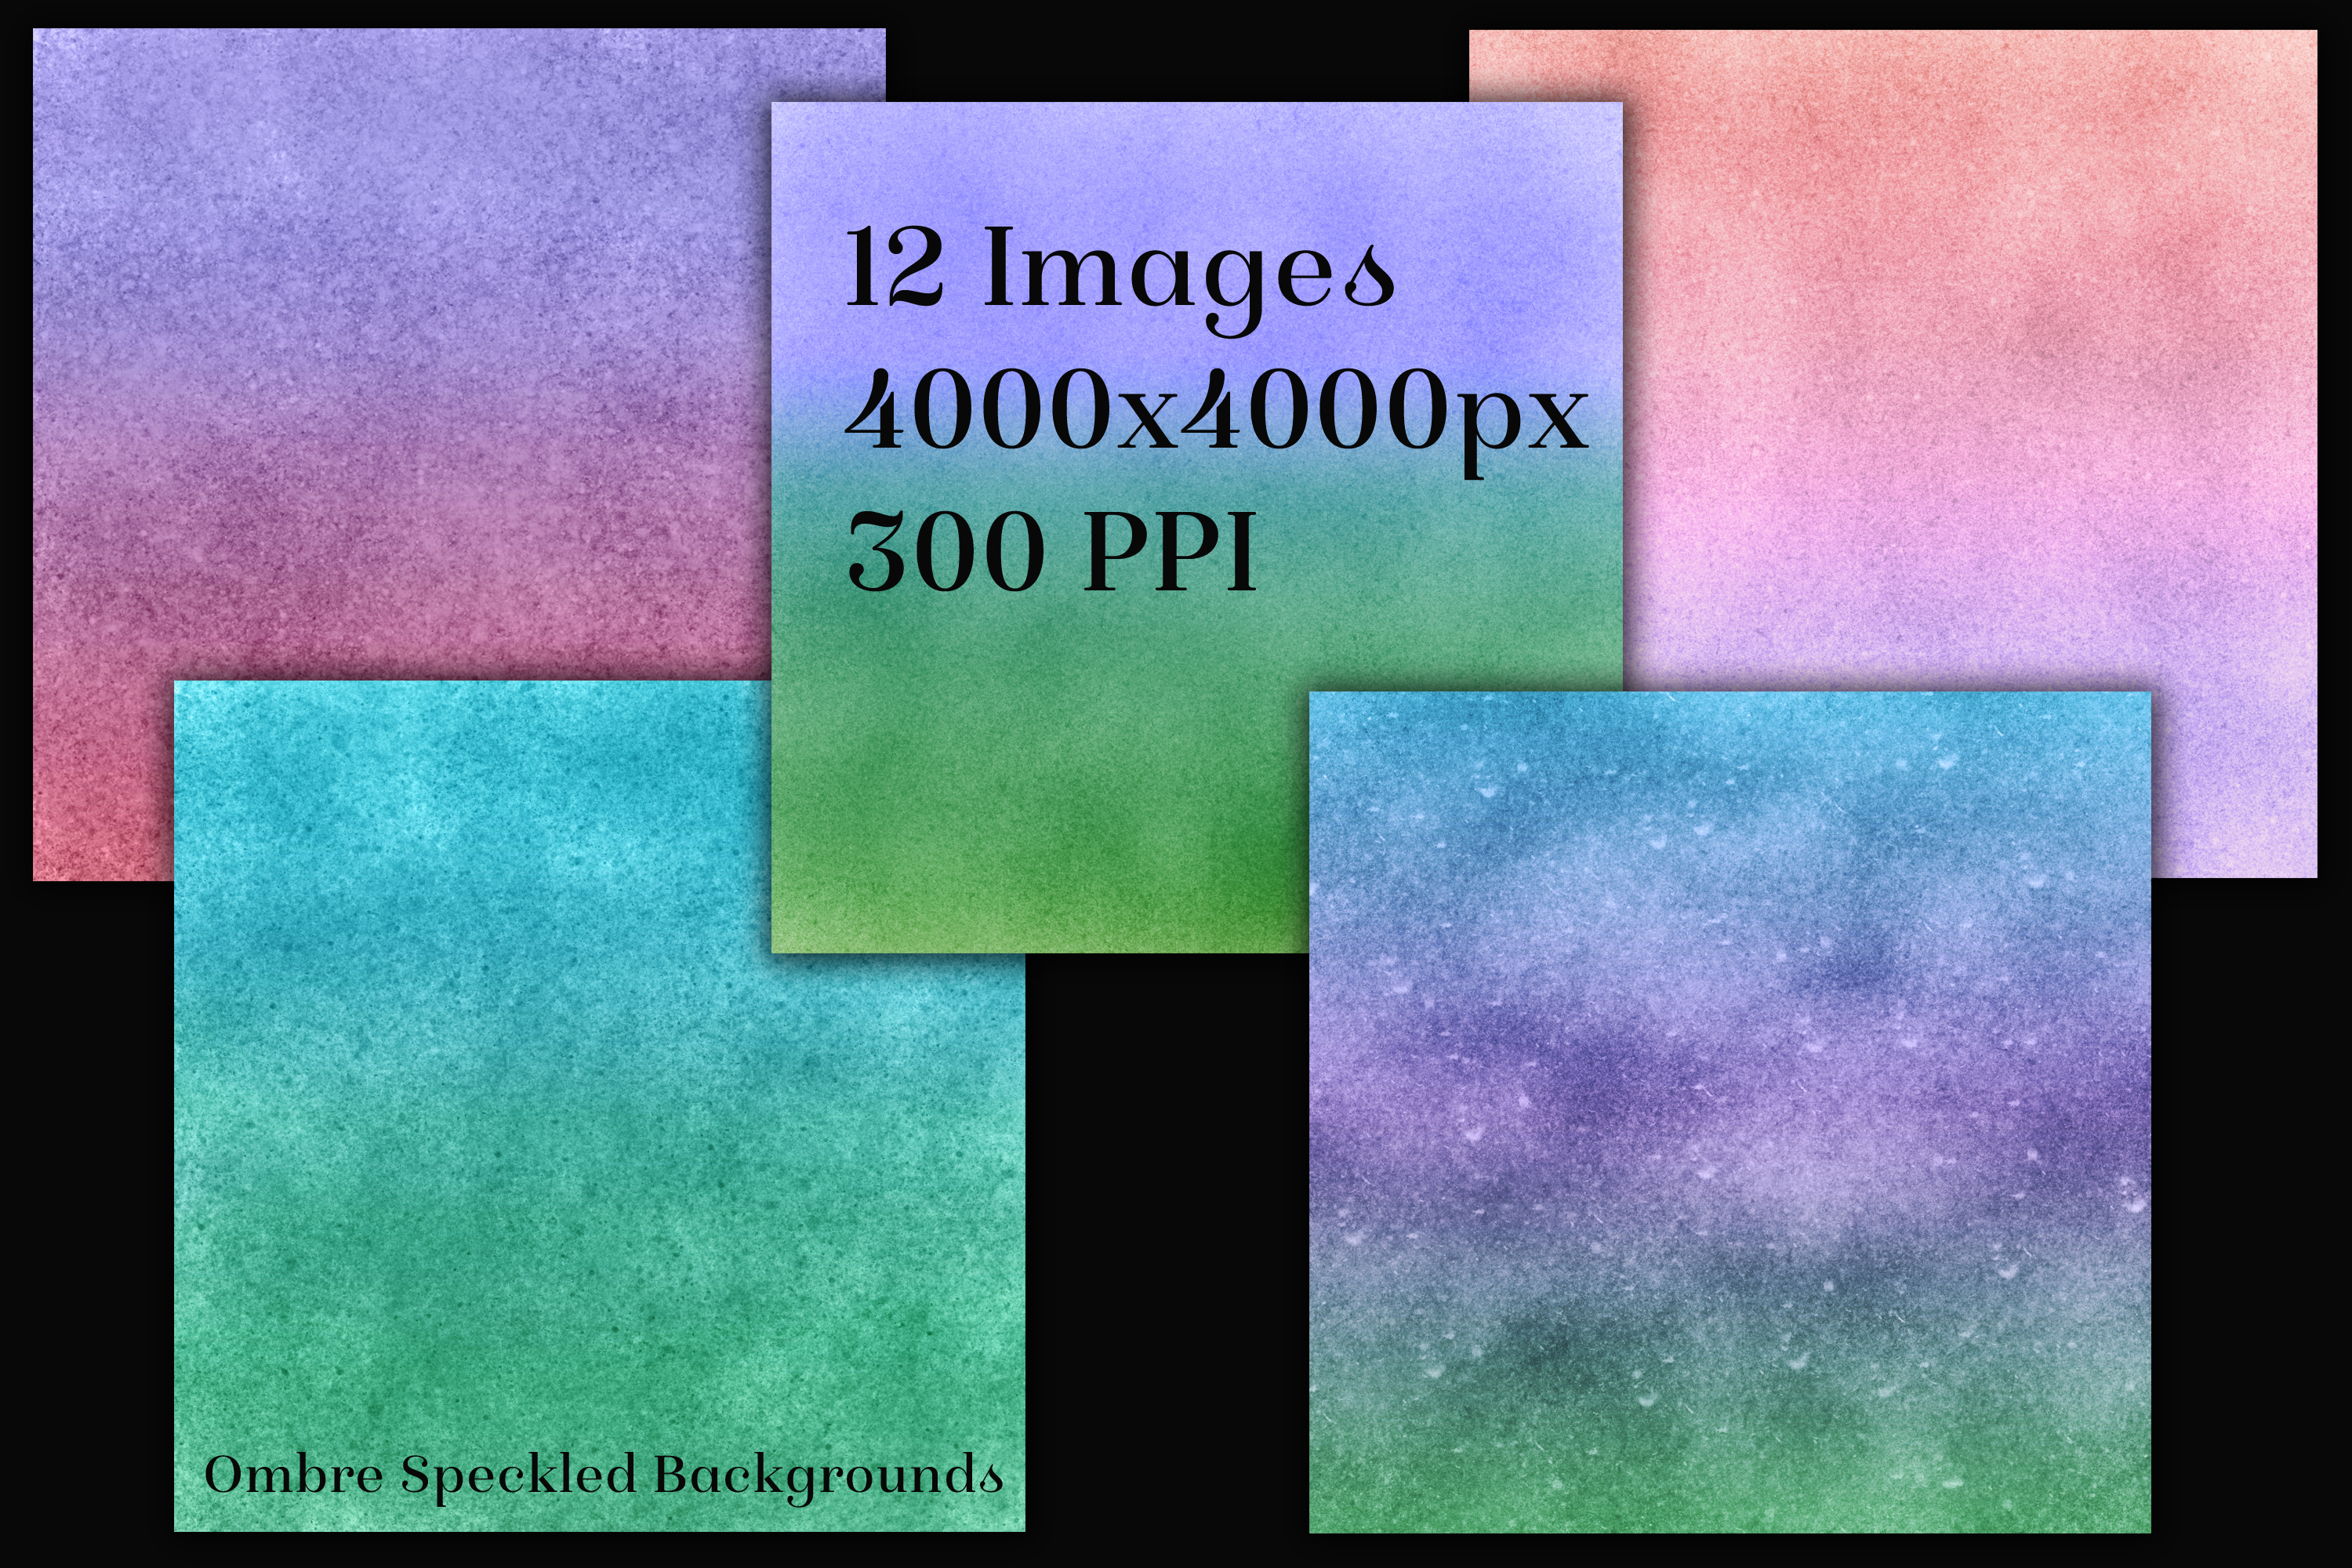 Ombre Speckled Backgrounds - 12 Image Textures Set example image 2